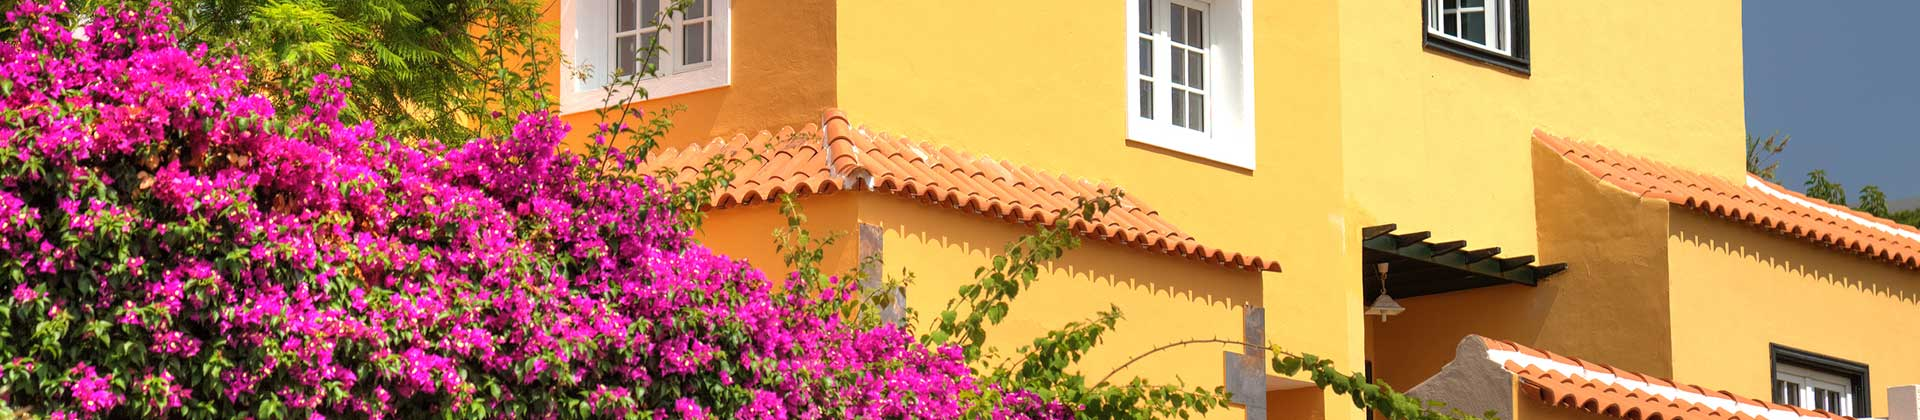 https://www.goodmorningtenerife.com/wp-content/uploads/2014/08/02_slide_flowers_GM_Tenerife.jpg